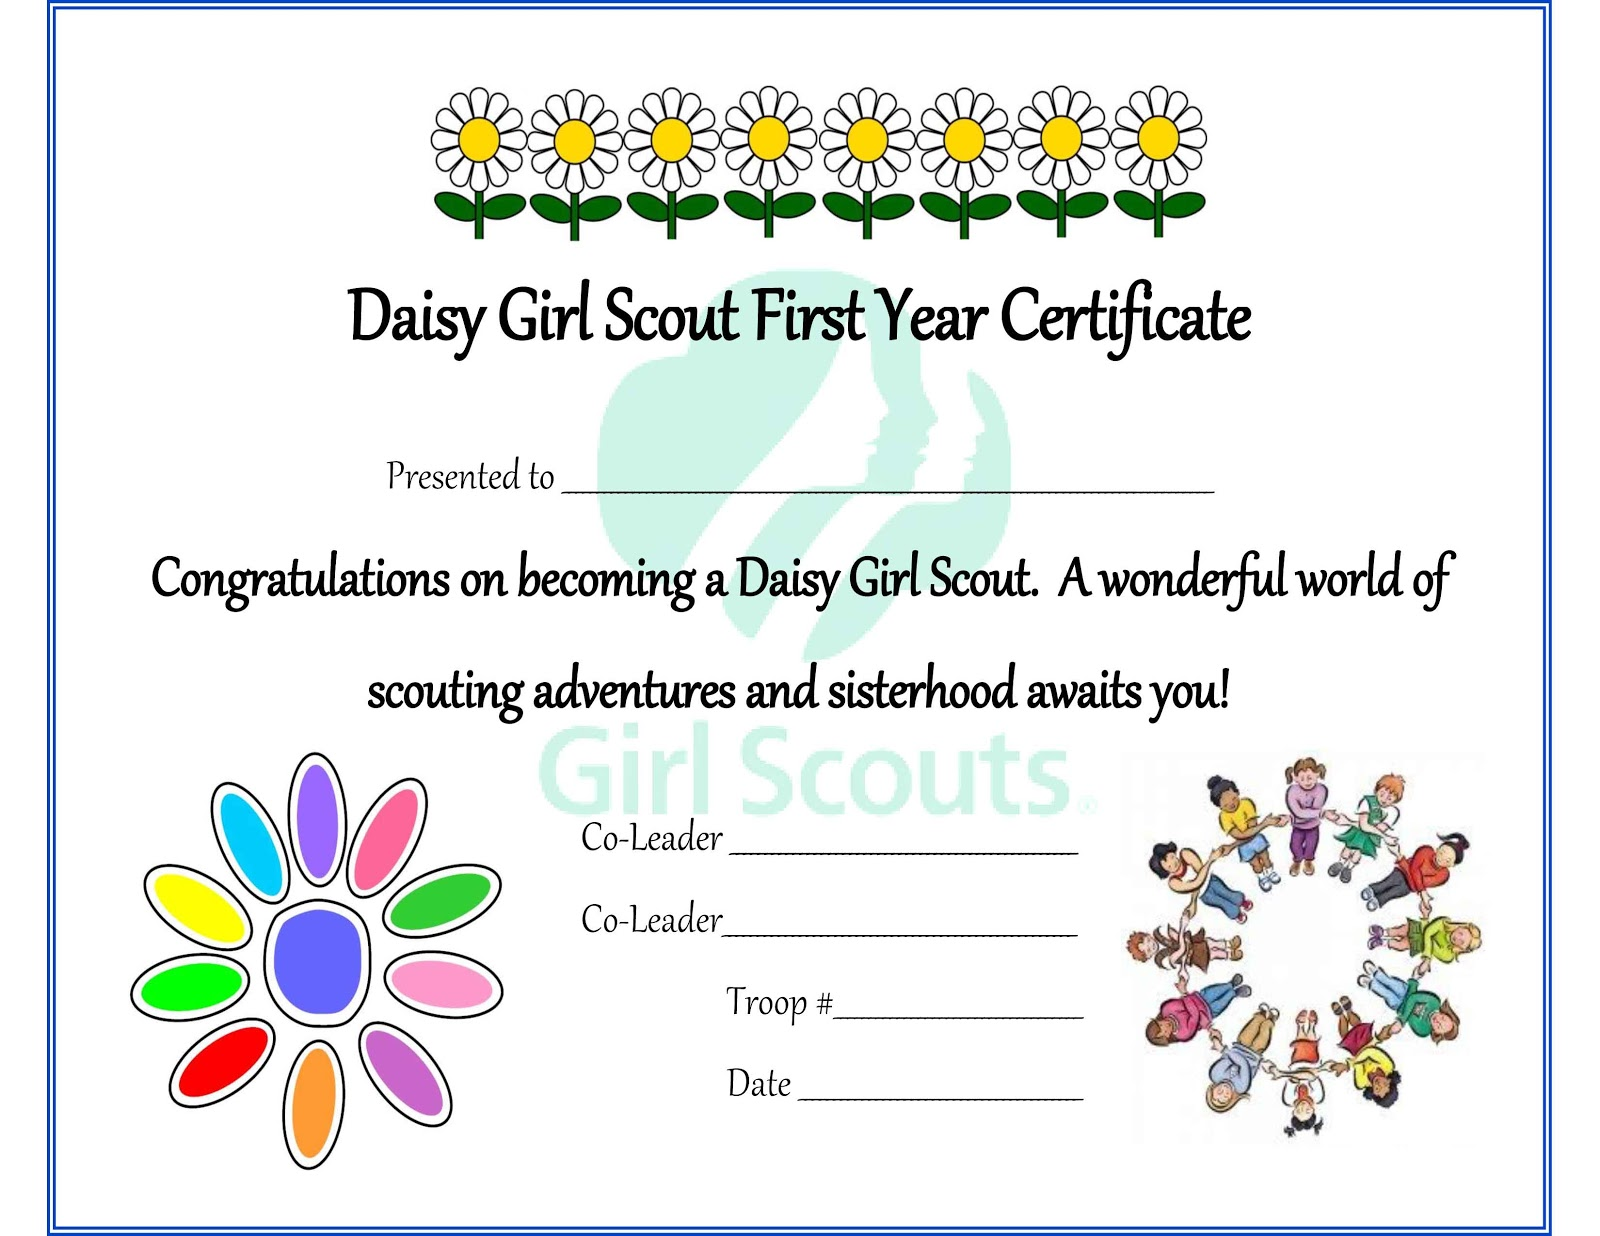 photograph about Girl Scout Certificates Printable Free known as Lady Scouts Daisy Welcome Certification Guidelines We Notice How In the direction of